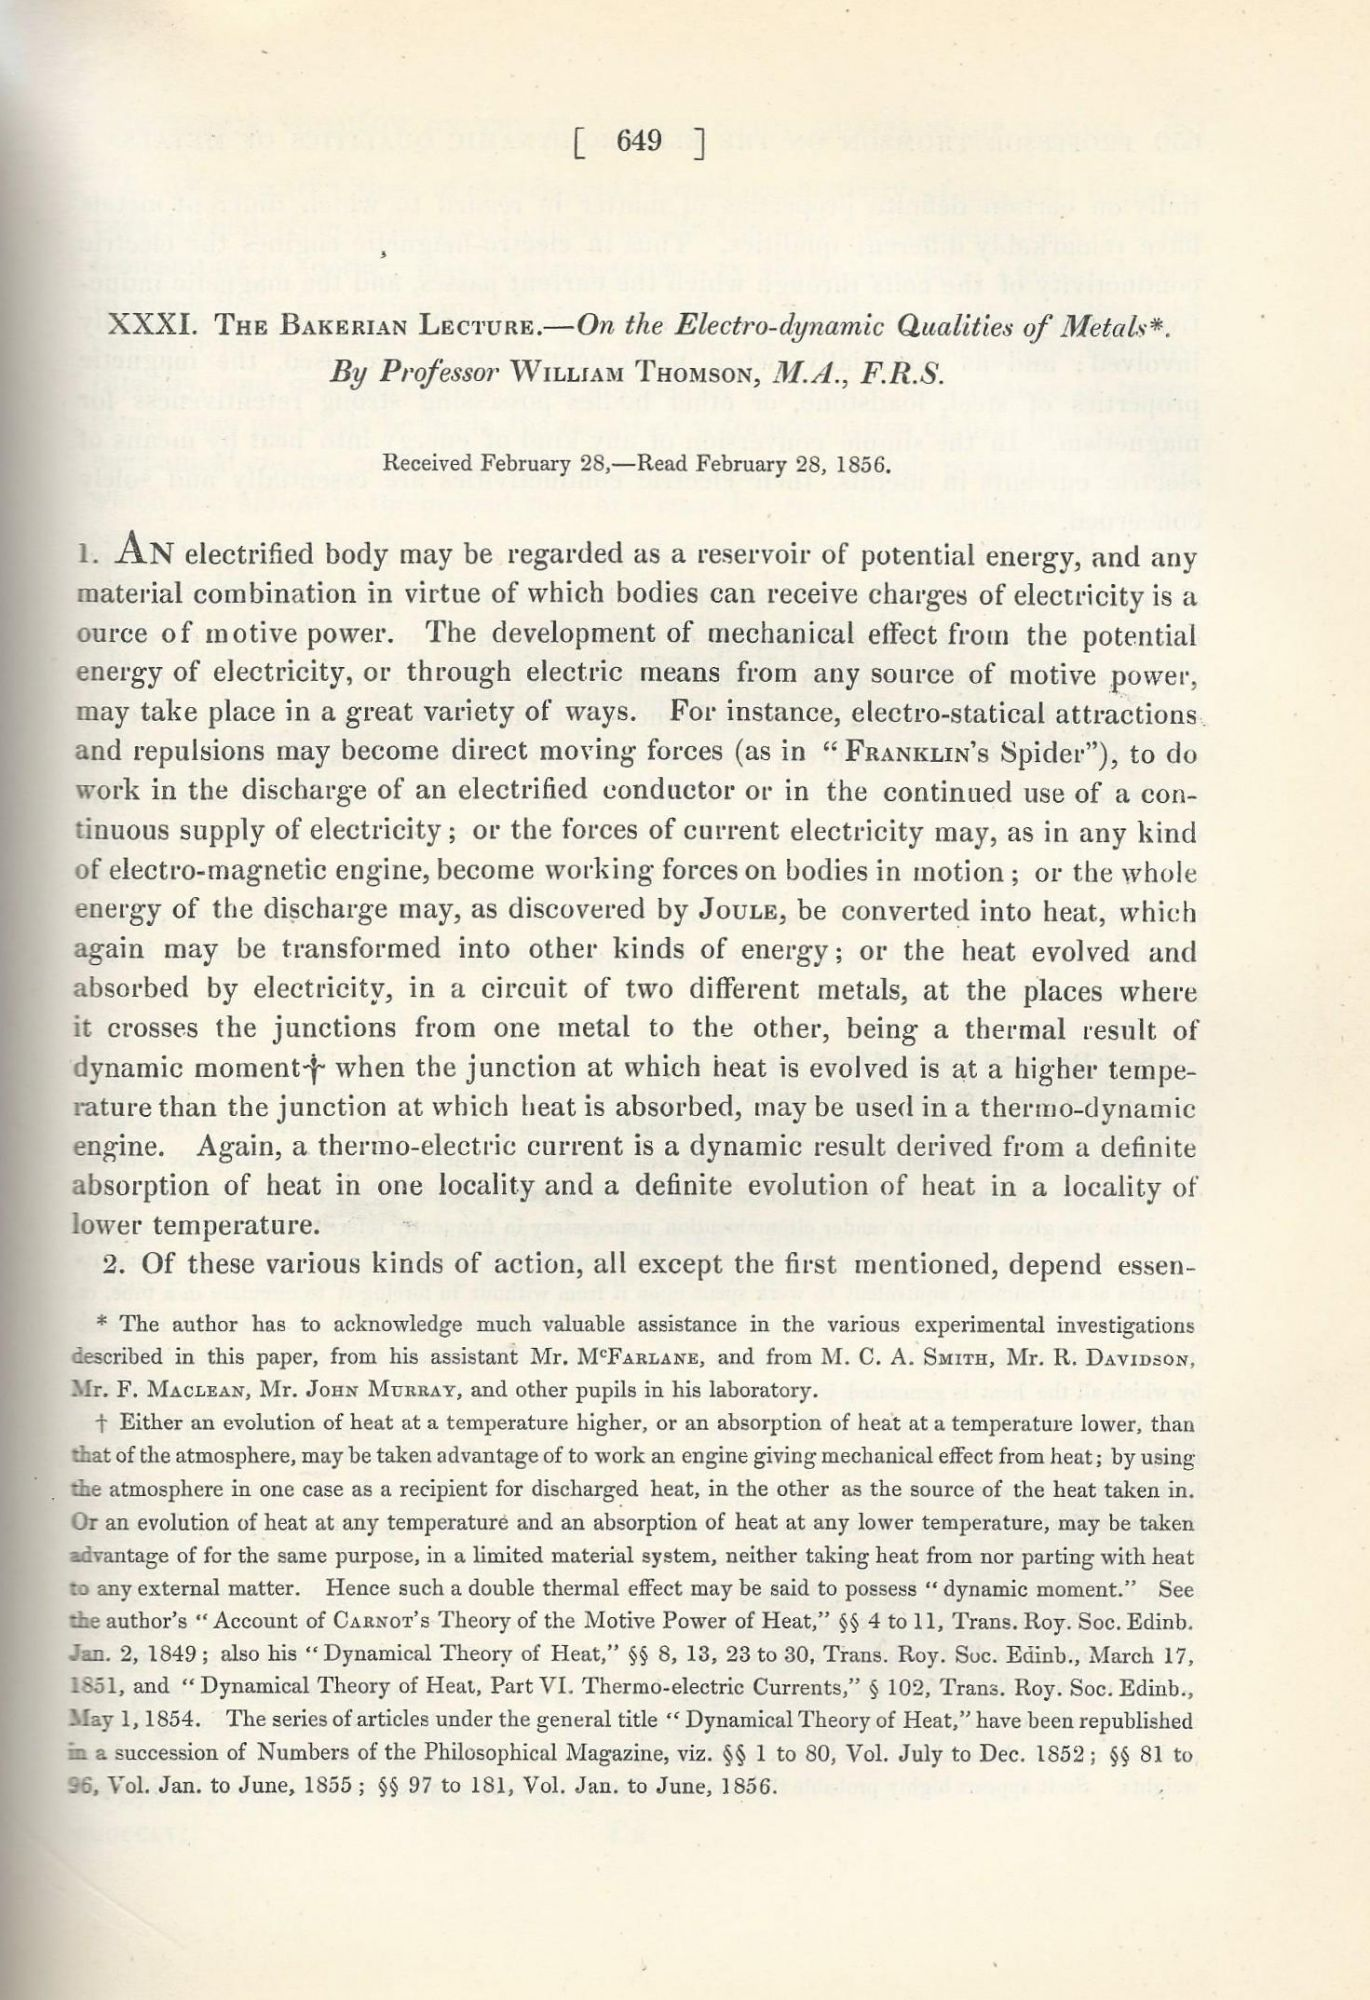 THE THOMSON EFFECT The Bakerian Lecture  On the Electro-dynamic Qualities  of Metals Philosophical Transactions of the Royal Society of London, Vol